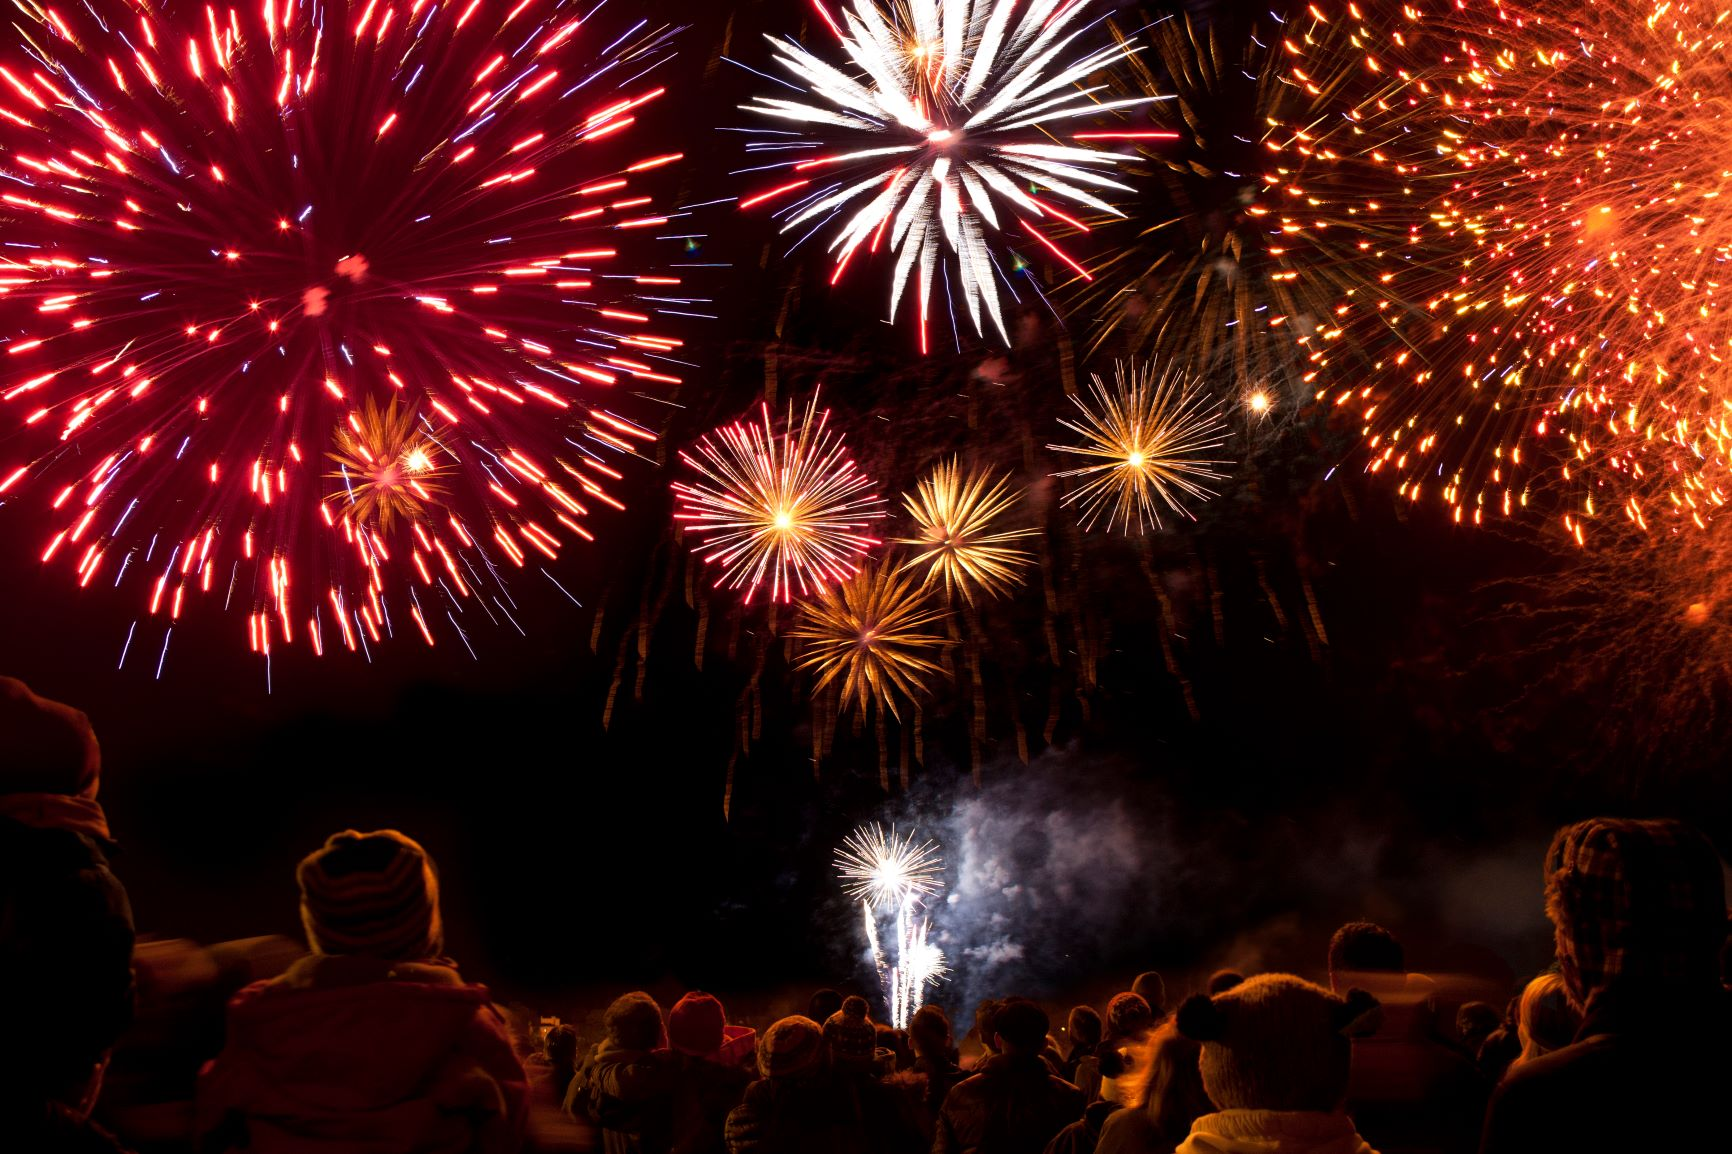 family, fireworks and fun this new year's eve - smc coach hire